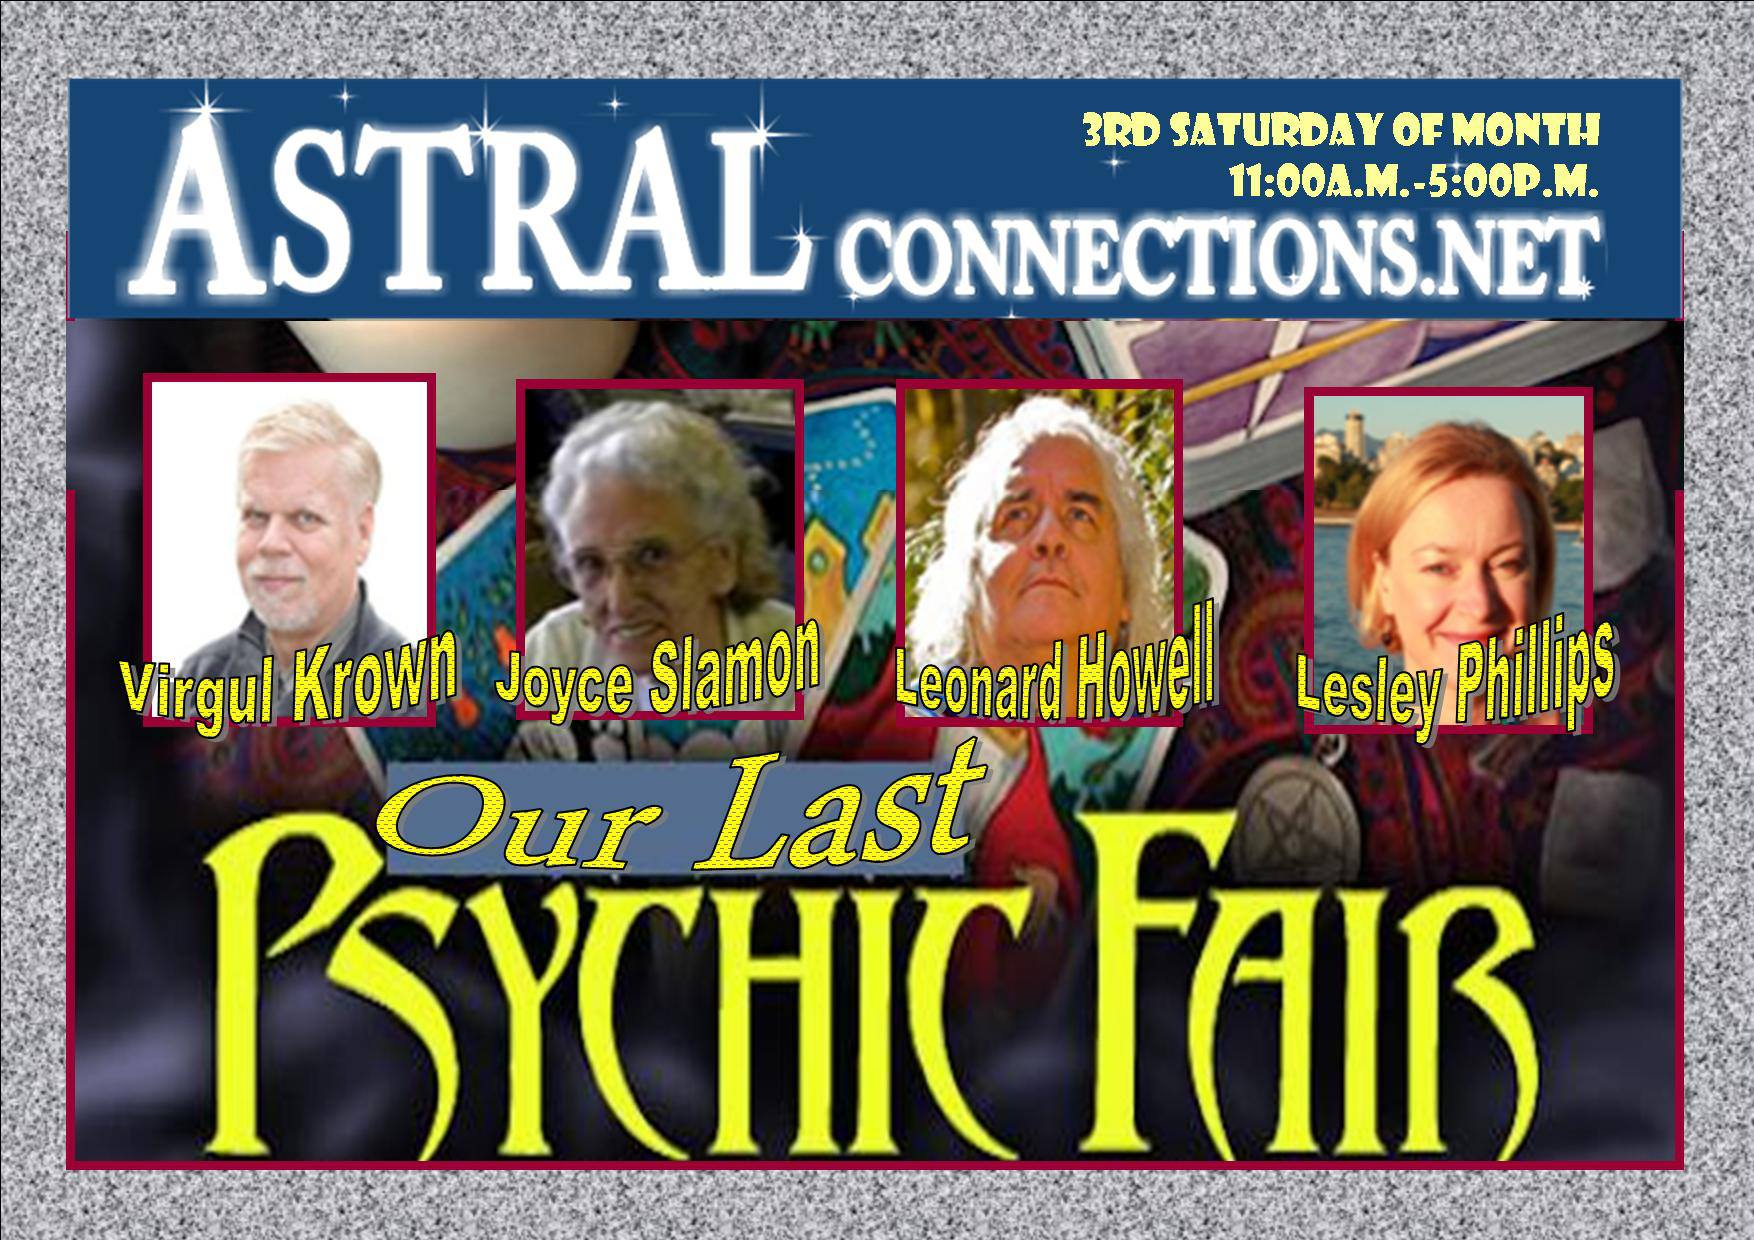 Astral Psychic Fair